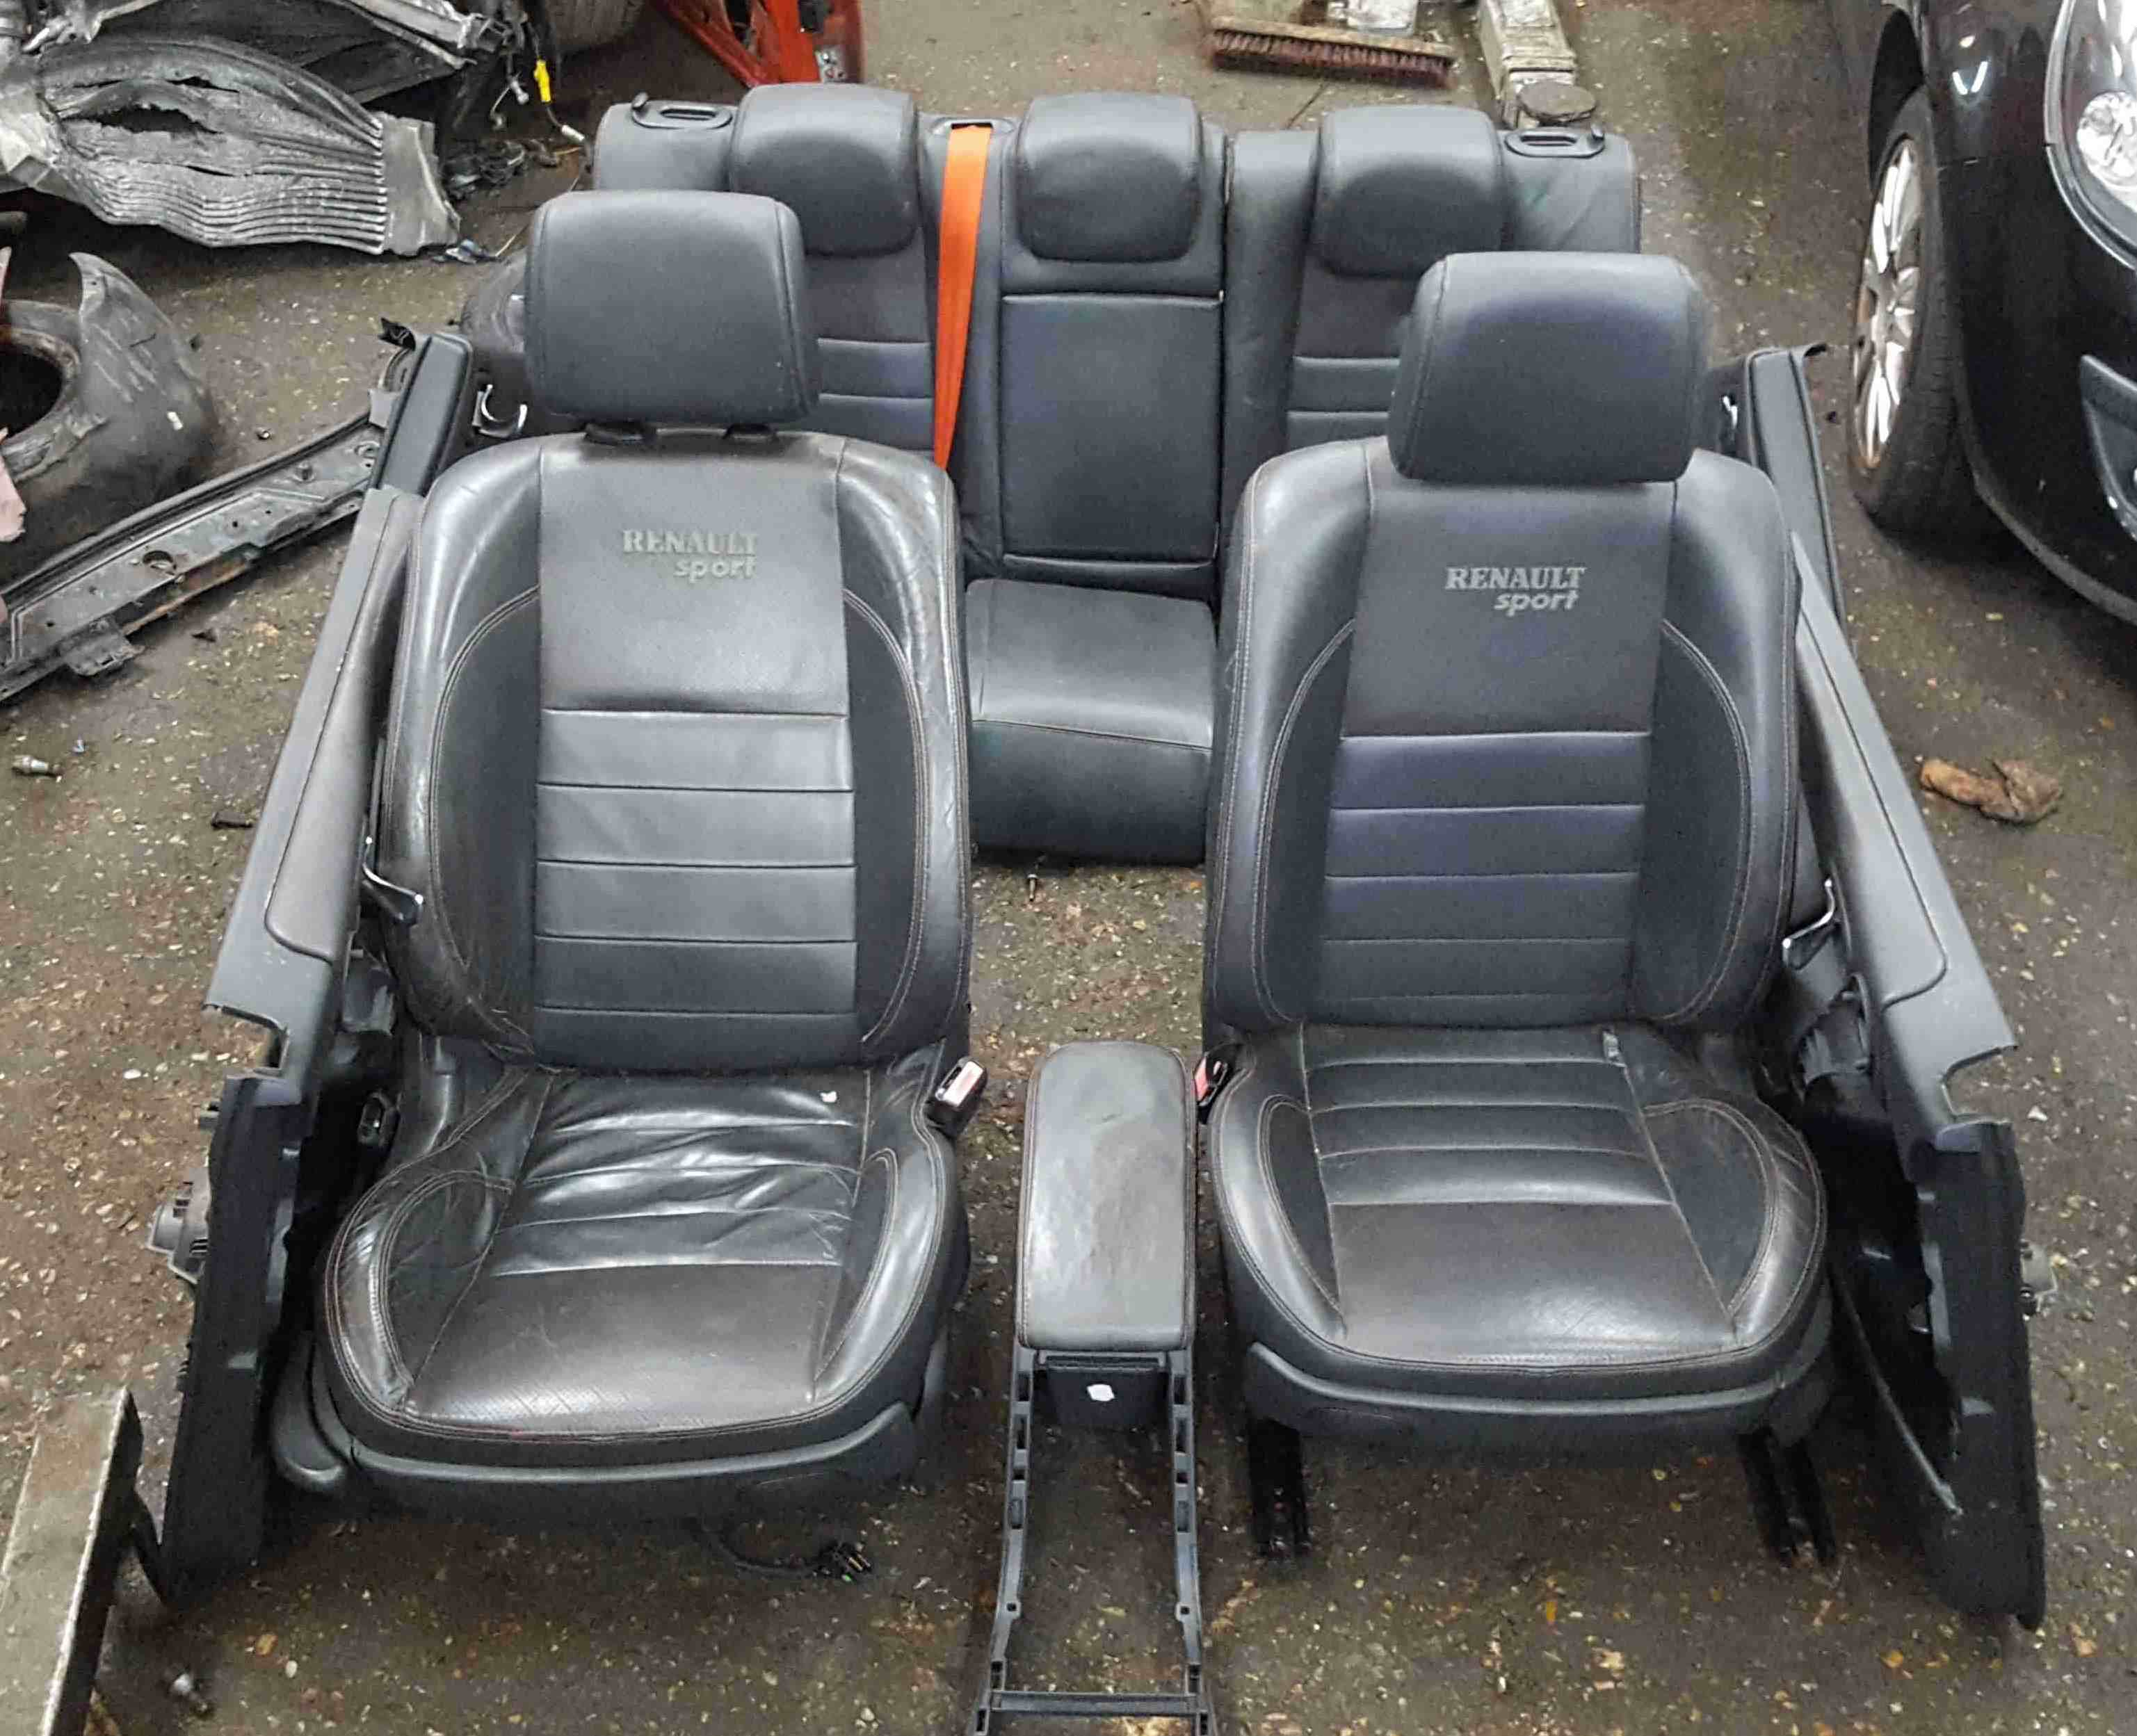 Renault Megane Sport 2002-2008 225 Leather Interior Set Chairs Cards